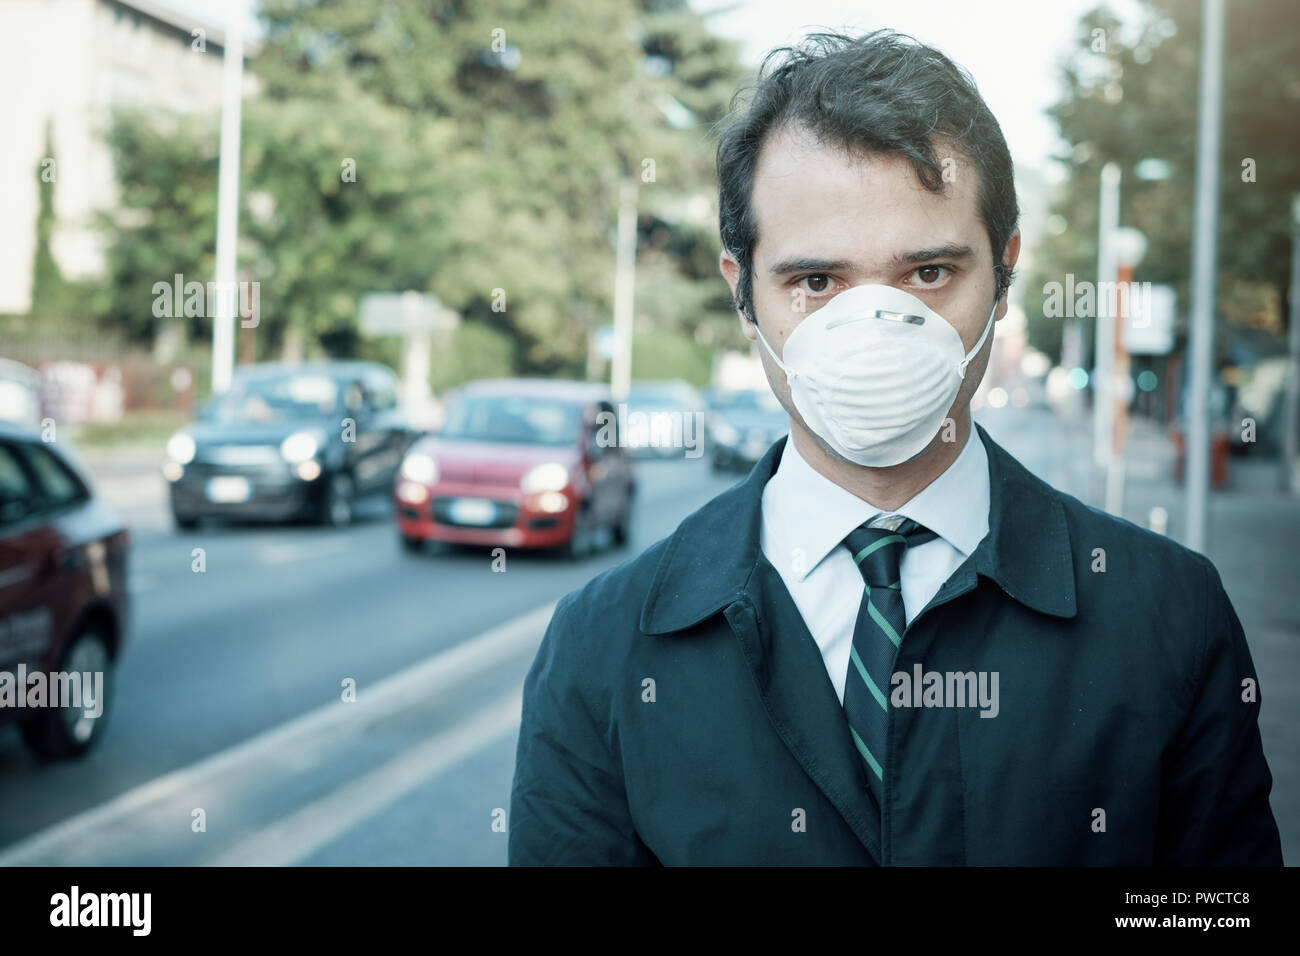 Man wearing mask against smog air pollution - Stock Image